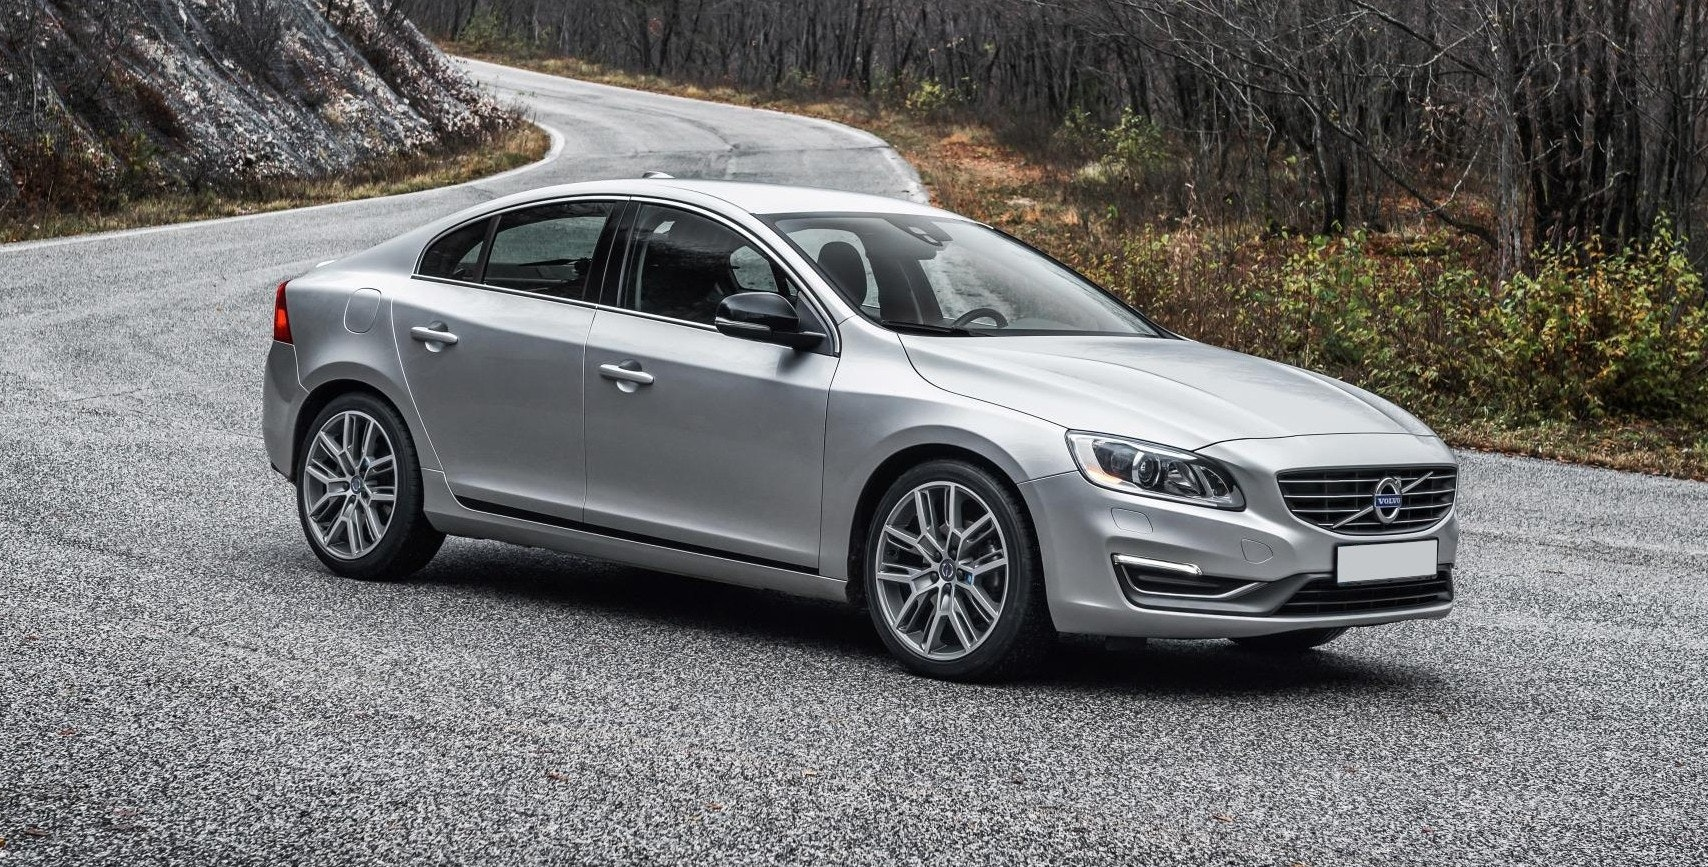 New Volvo S60 Review | carwow